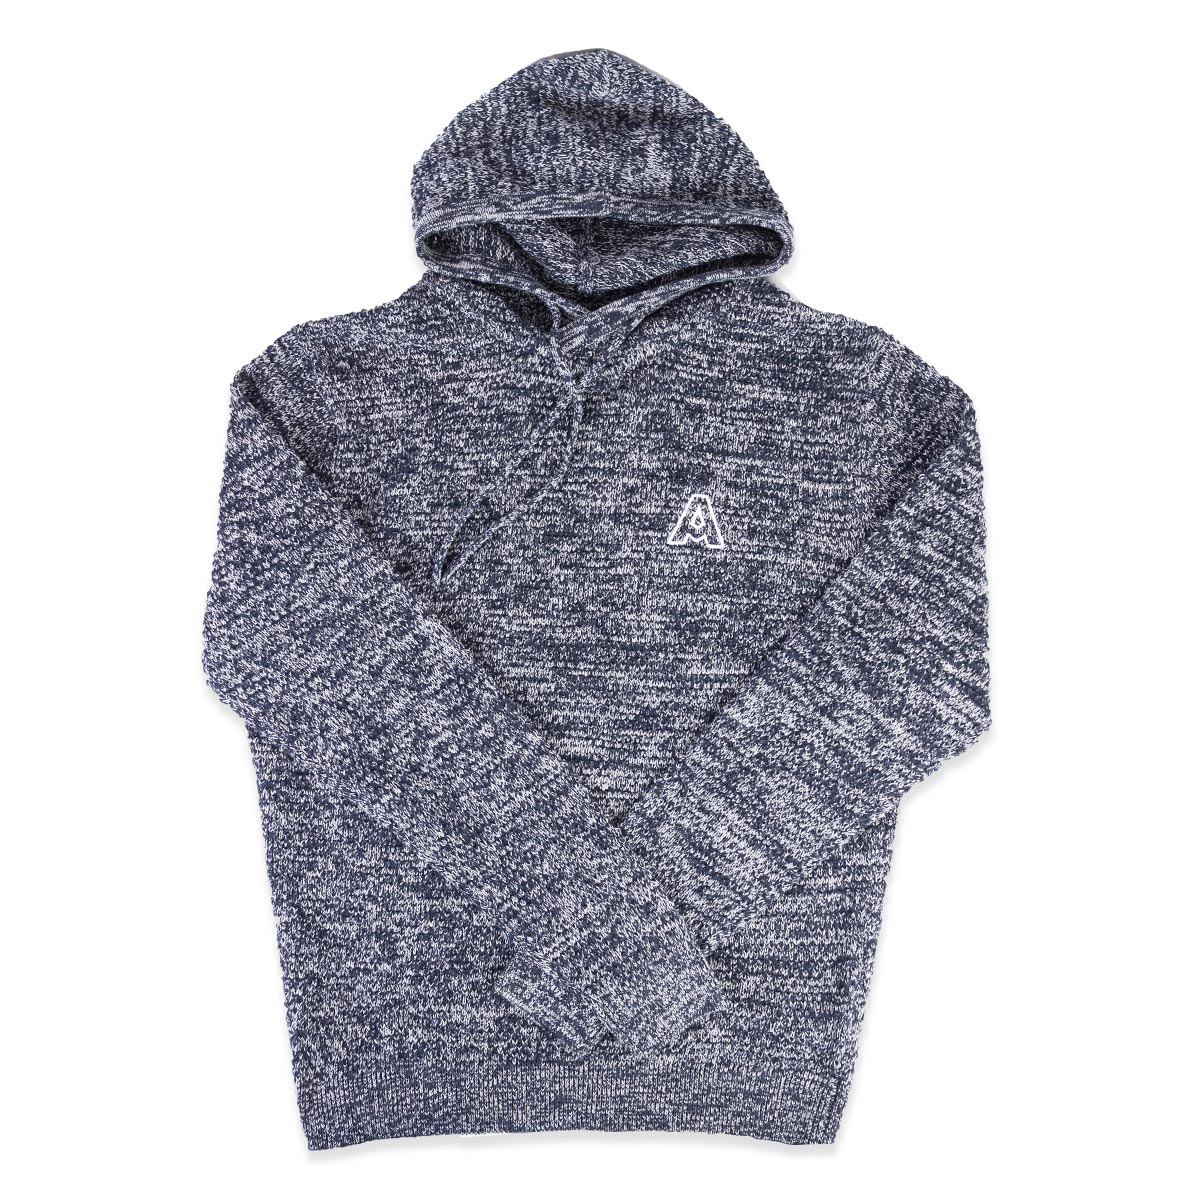 AWDis Ecologie Embroidered Iguazu Knitted Hoodies